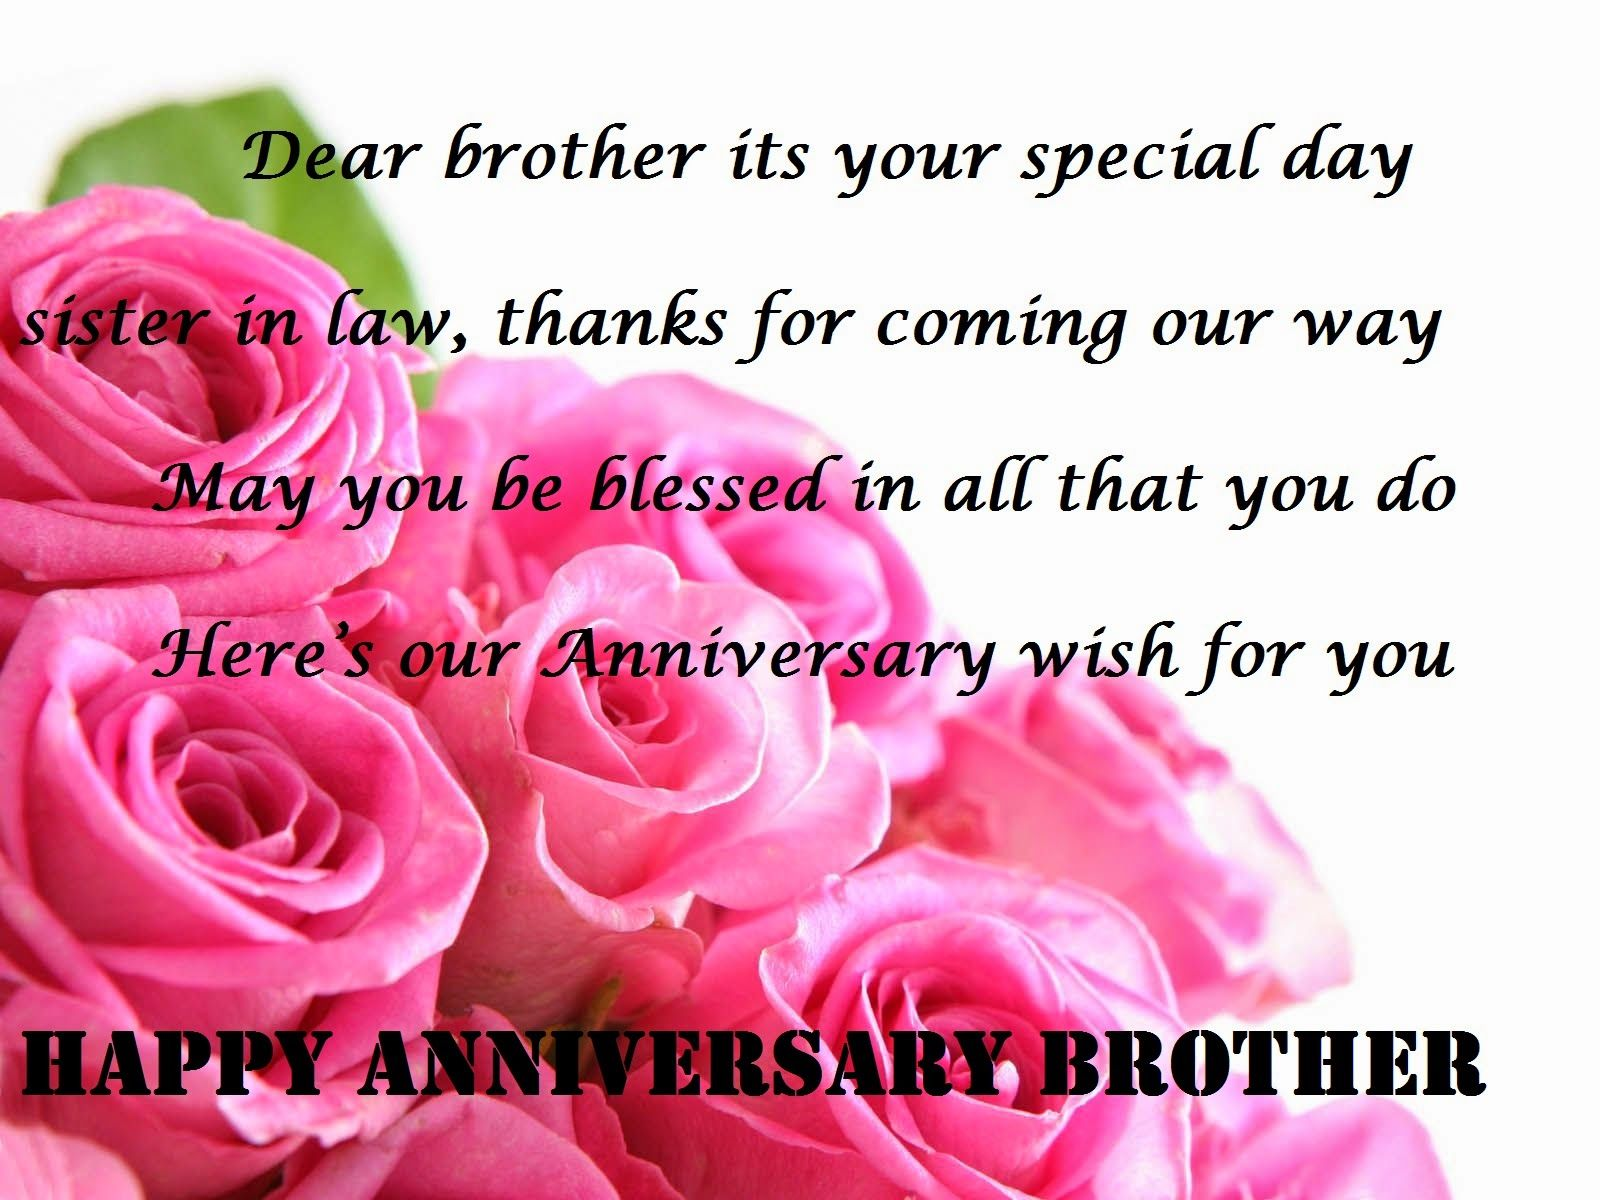 Happy Anniversary Wishes For Brother And Sister In Law Anniversary Wishes For Sister Happy Wedding Anniversary Wishes Happy Anniversary Wishes